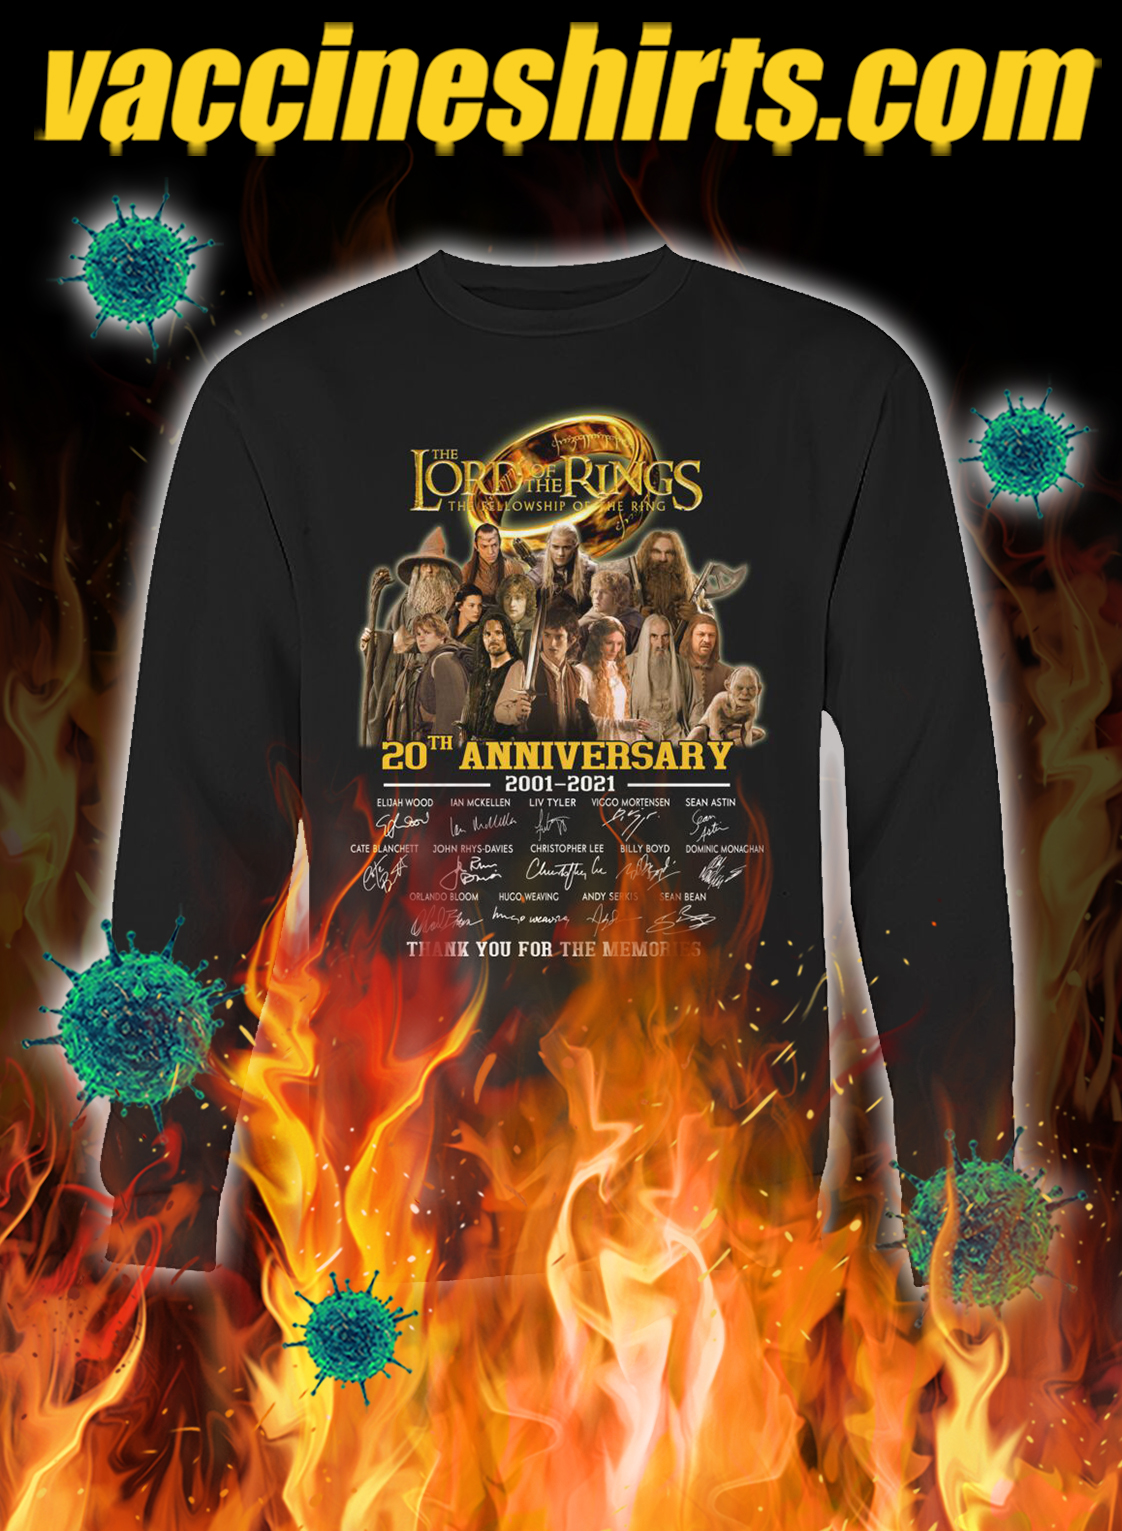 The lord of the rings 20th anniversary thank you for the memories sweatshirt